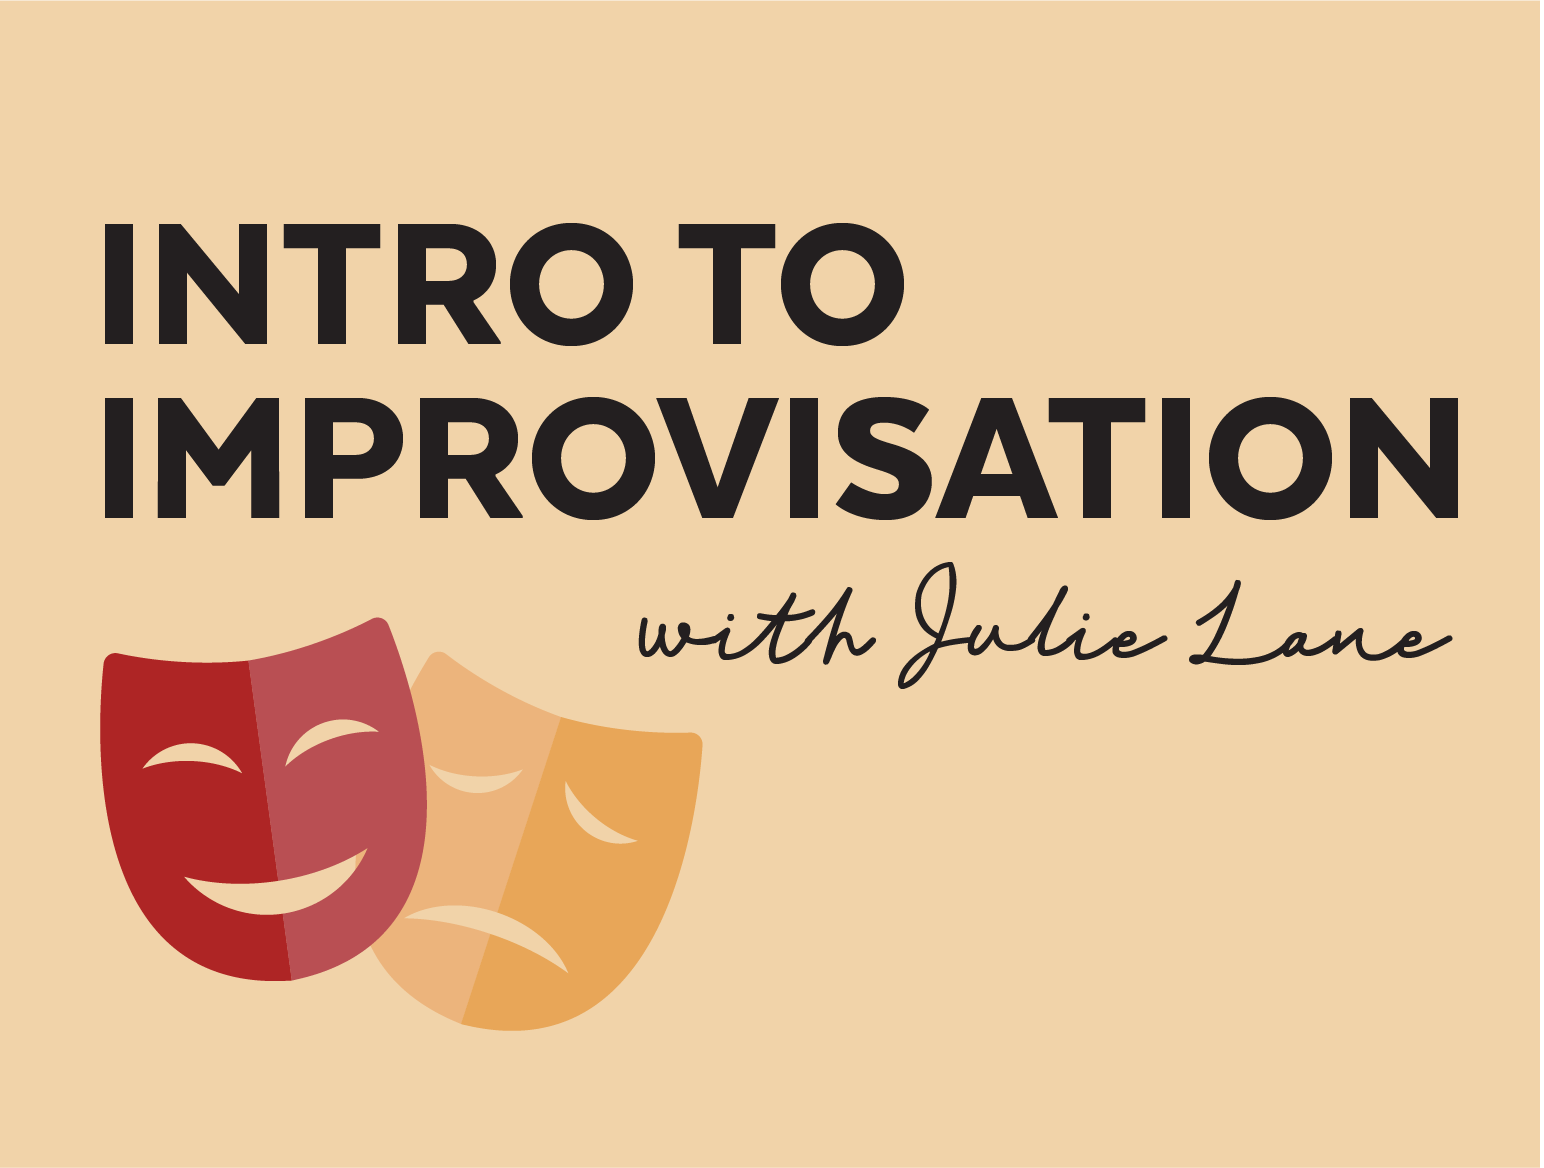 More Info for Intro to Improvisation with Julie Lane